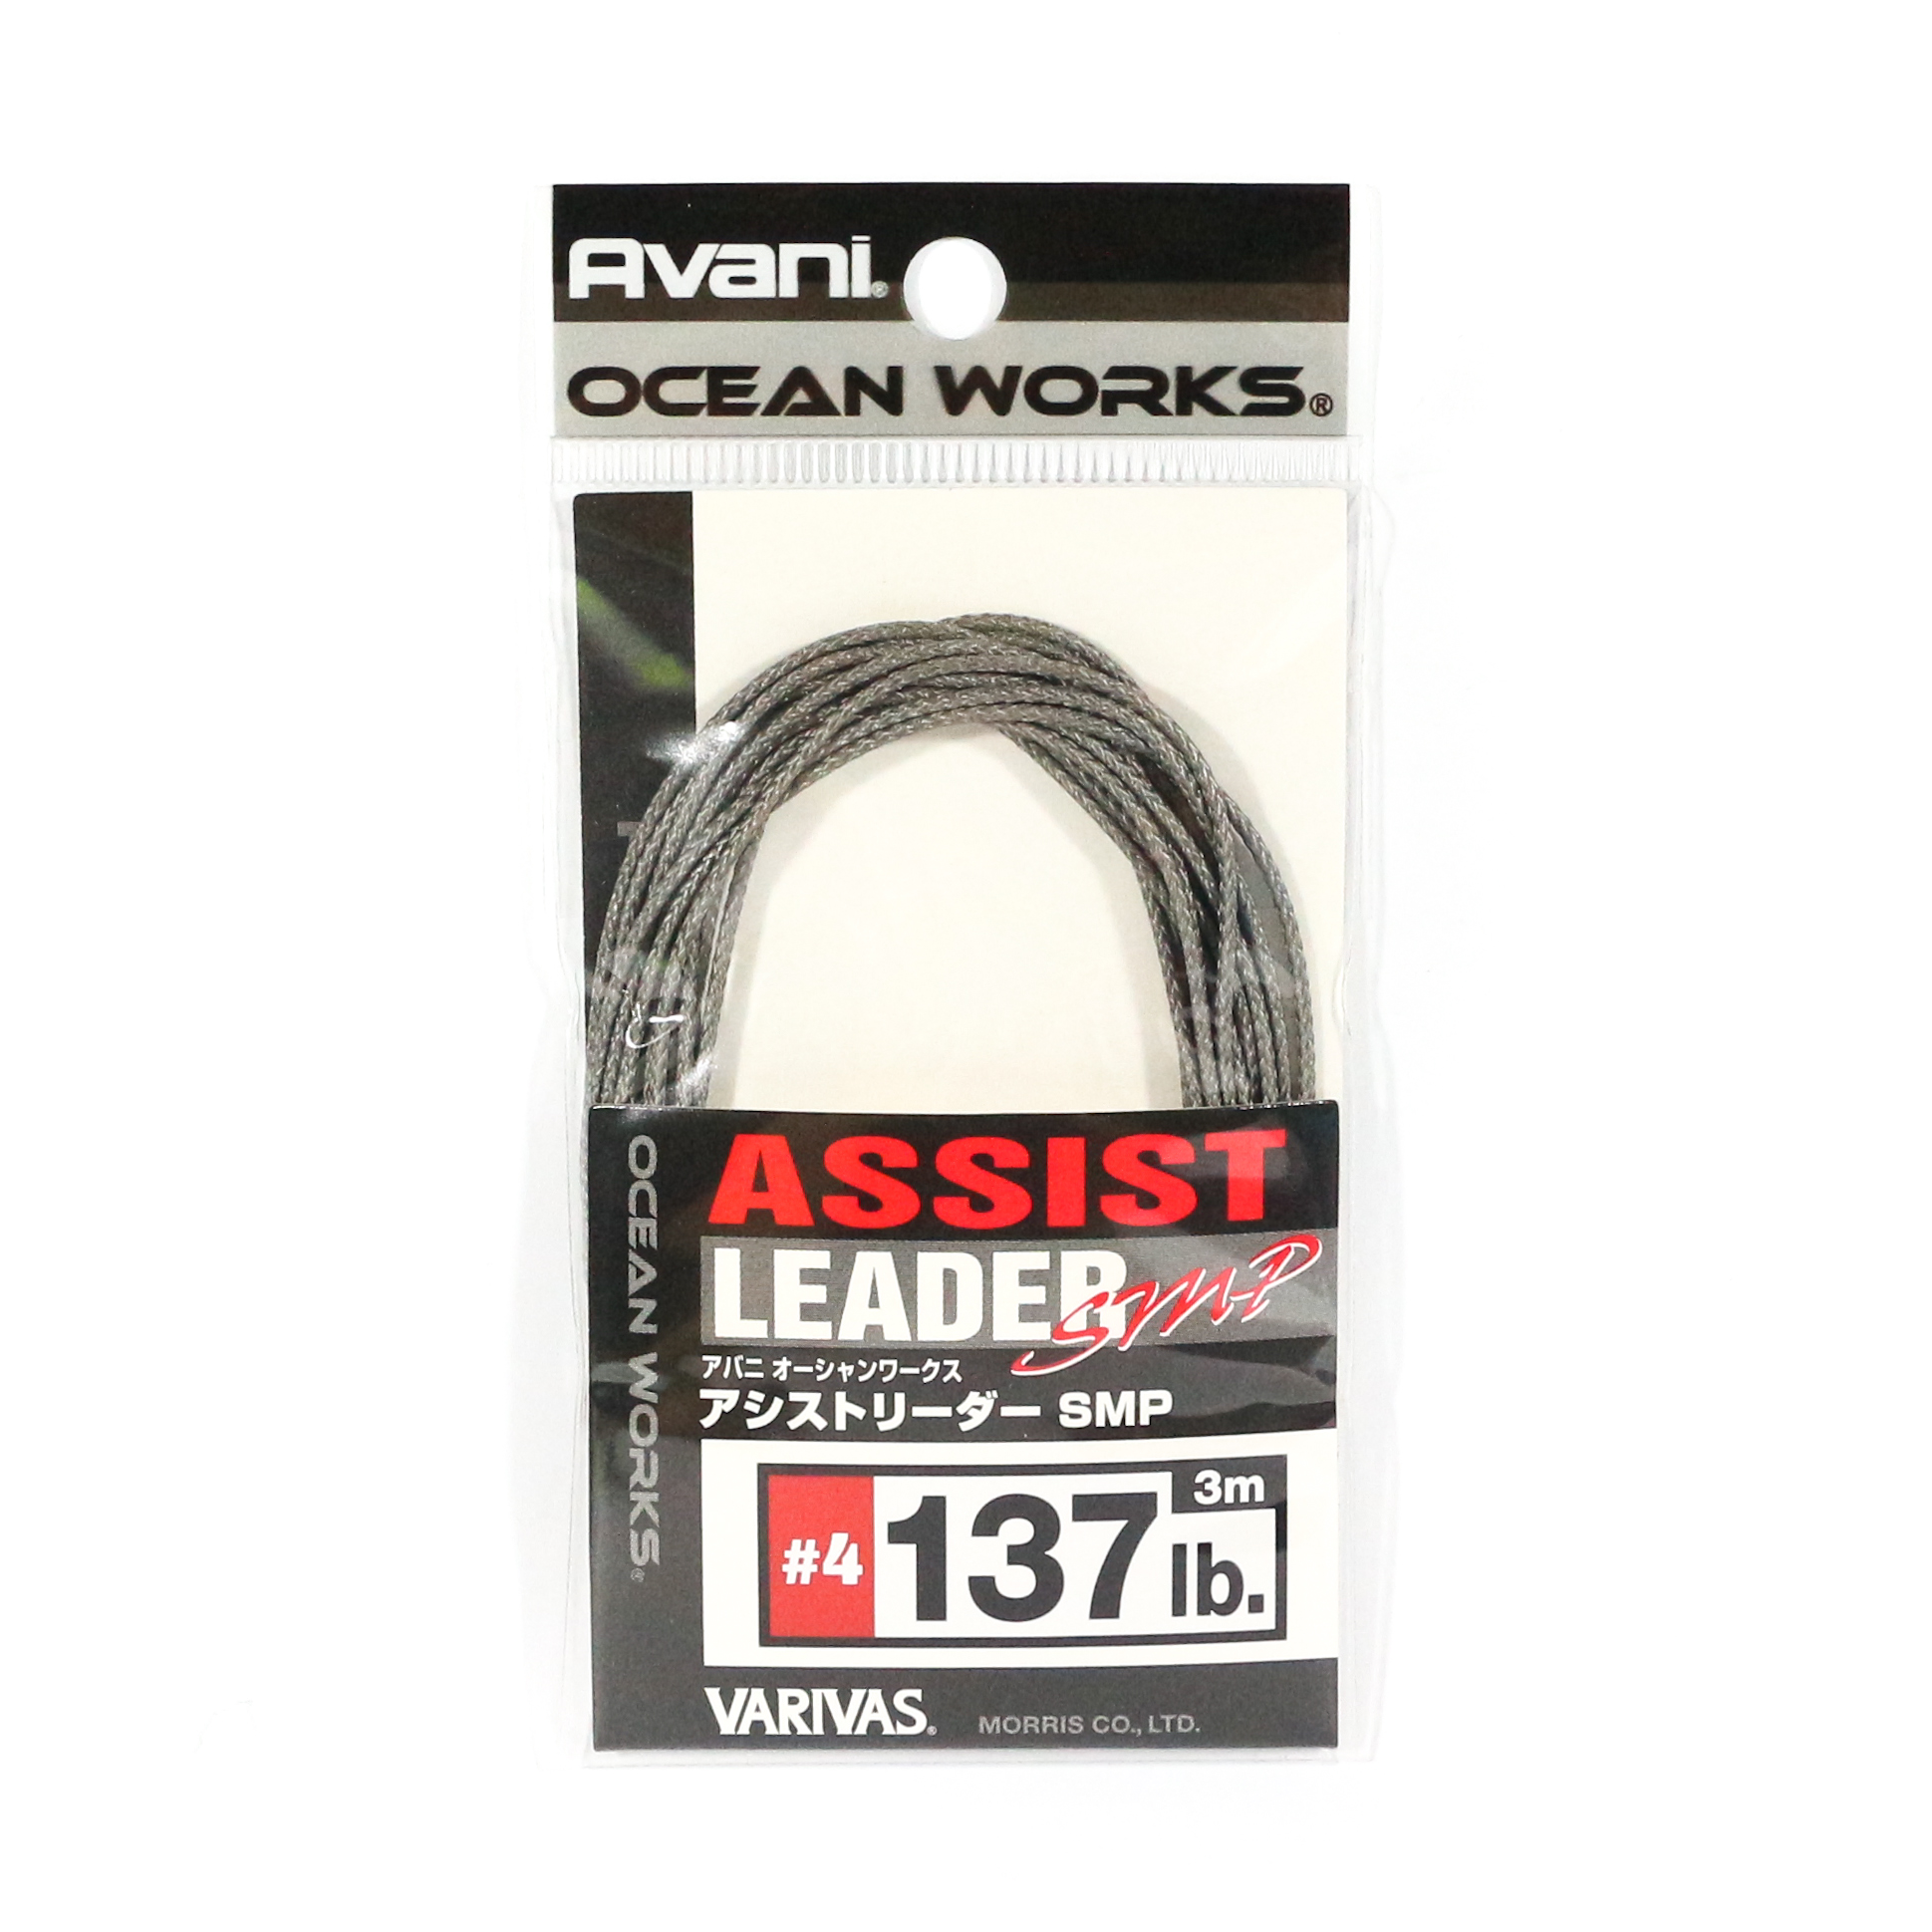 Varivas AH-4 Ocean Works Assist Leader SMP 3 meters #4 137lb (3974)